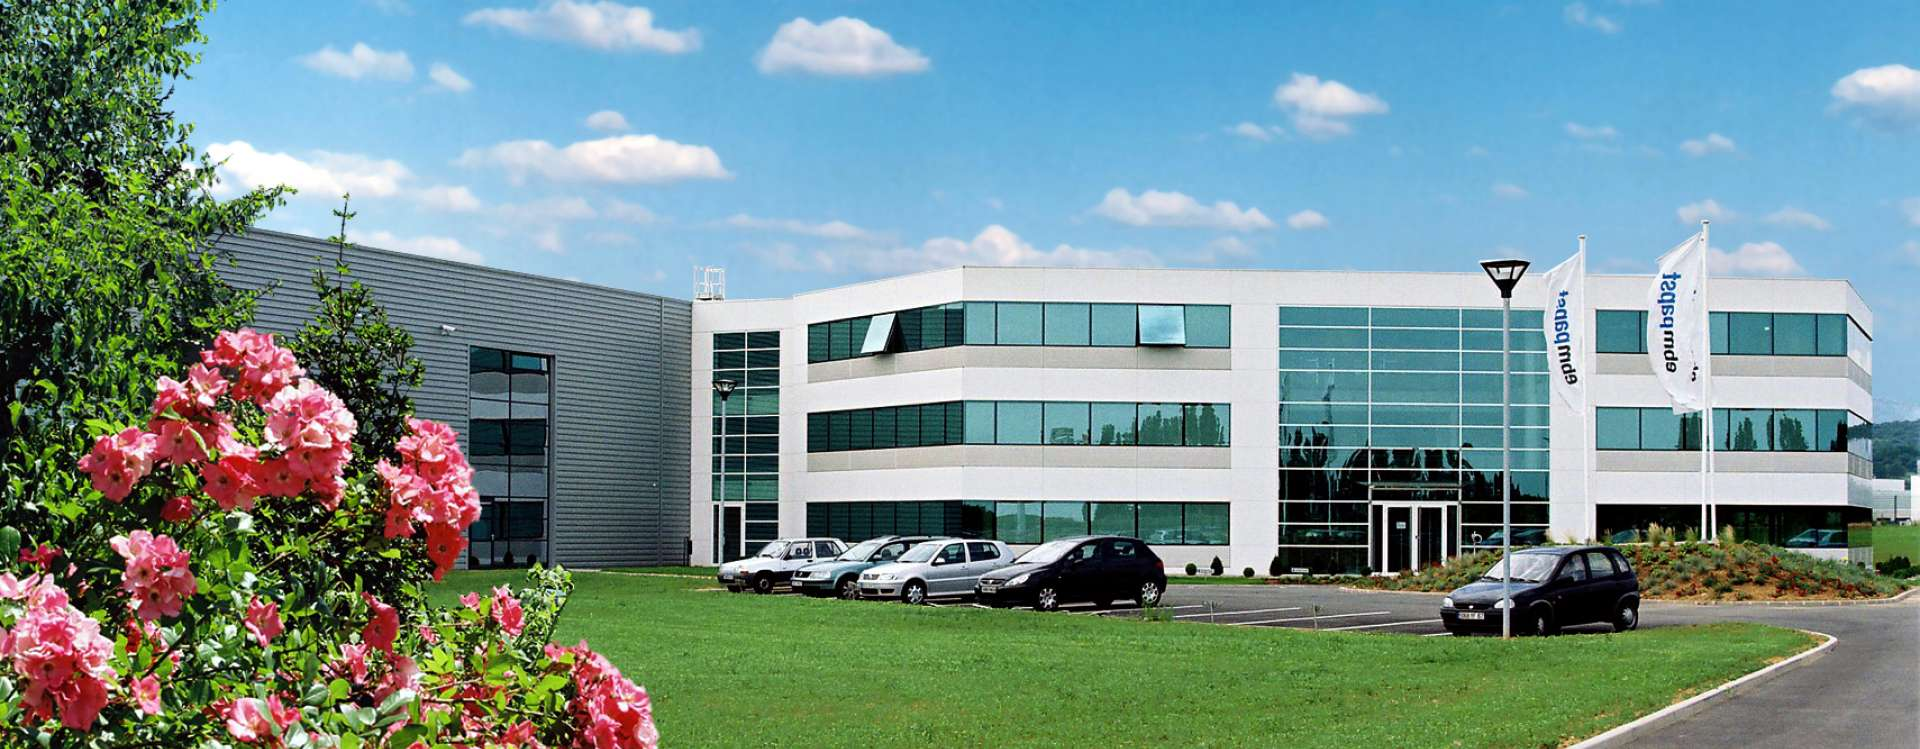 The head office of EBM Papst in Obernai, exemplary industrial buildings